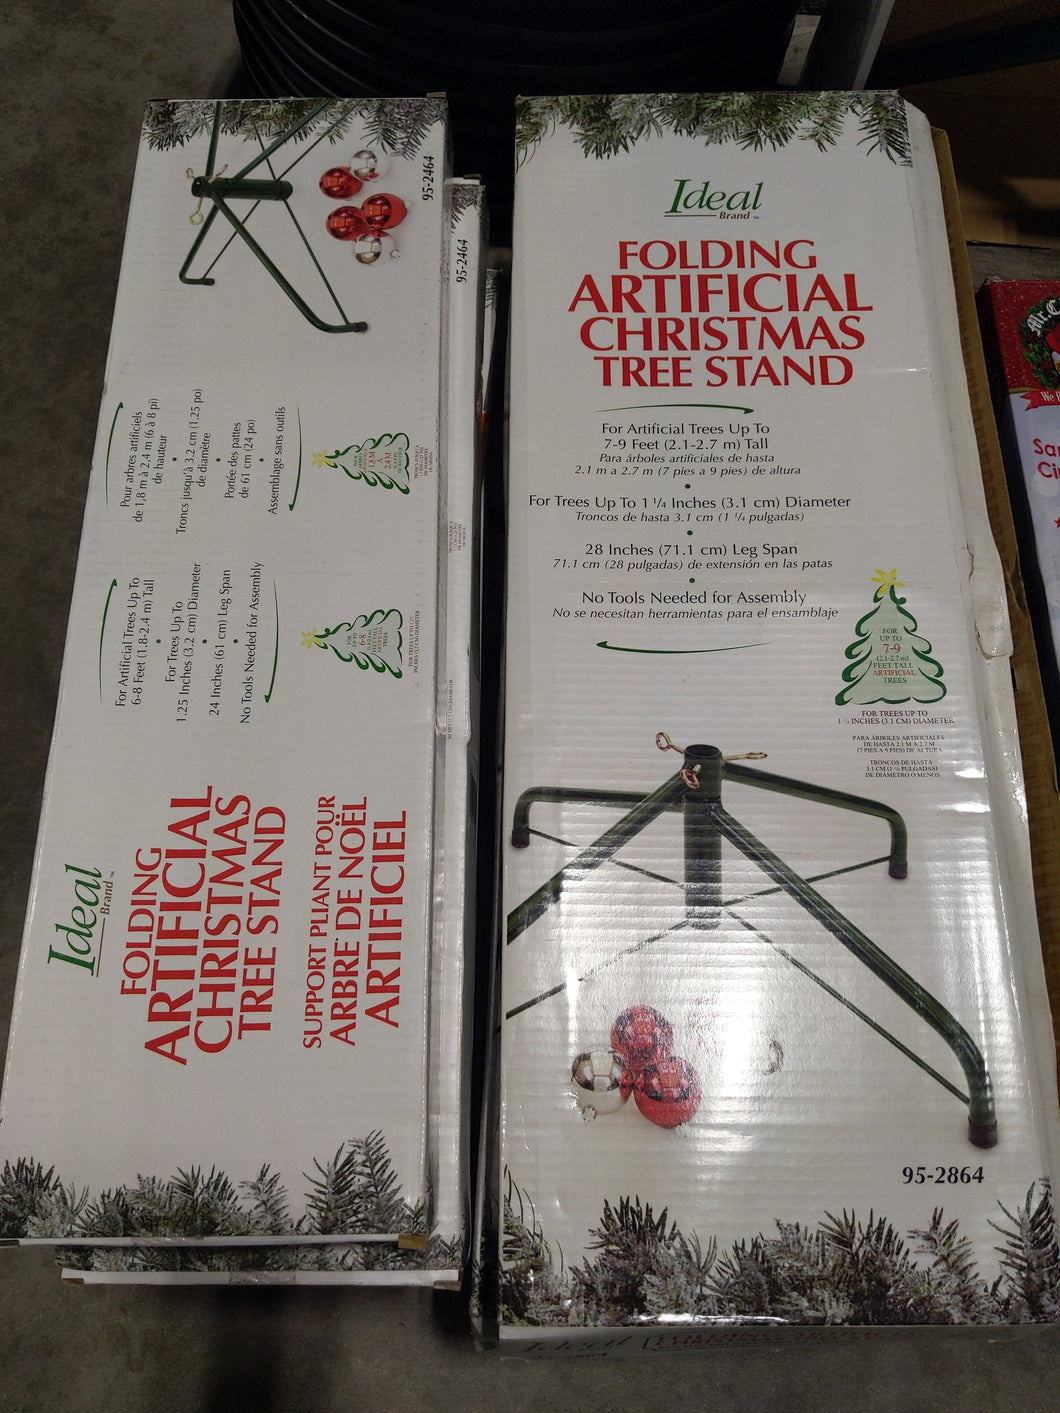 Ideal Folding Christmas Tree Stand